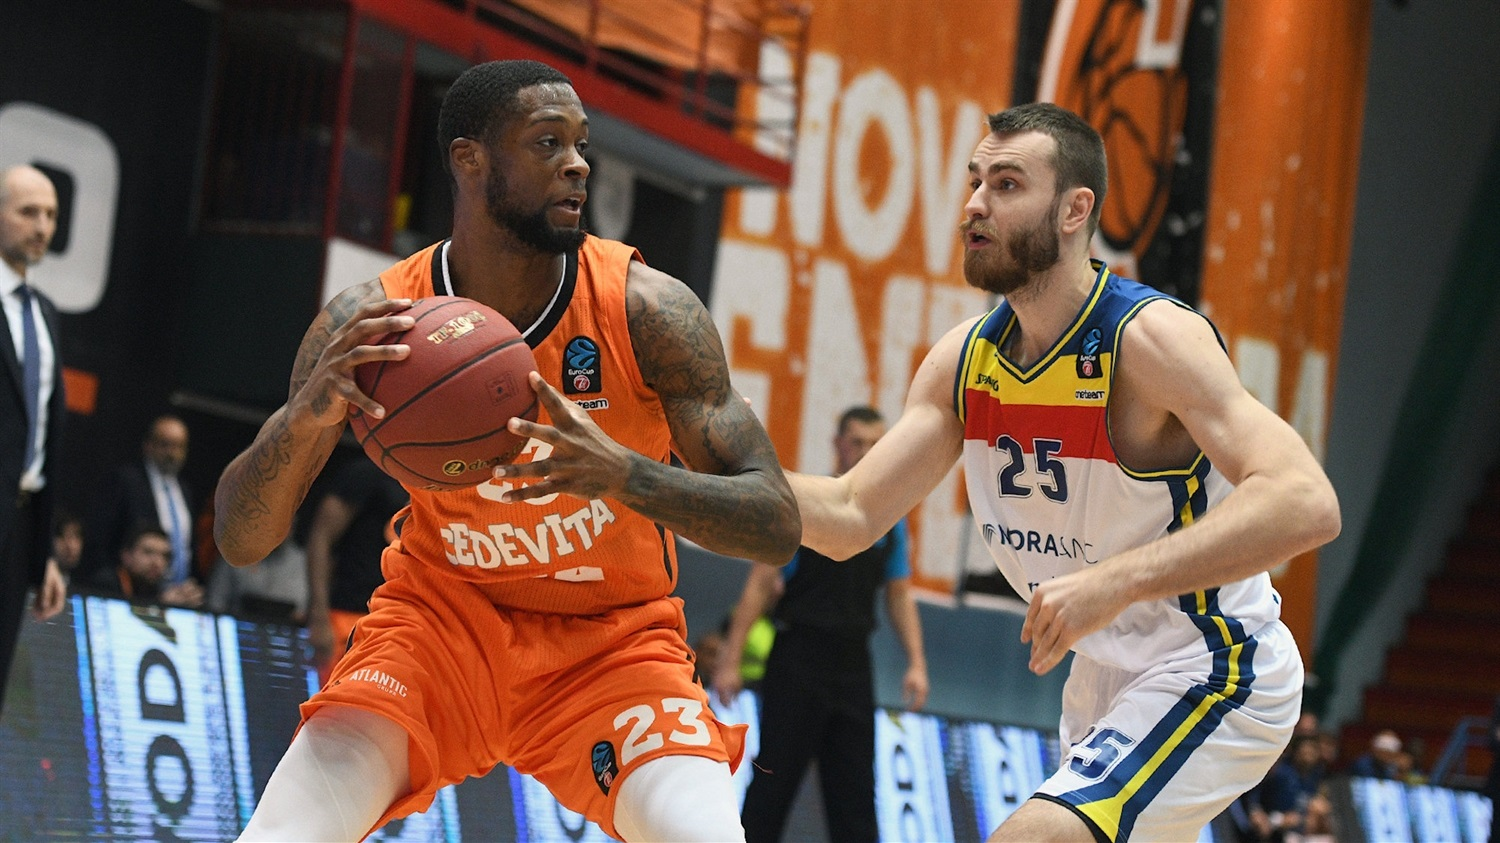 Elgin Cook - Cedevita Zagreb -  (photo Cedevita) - EC18